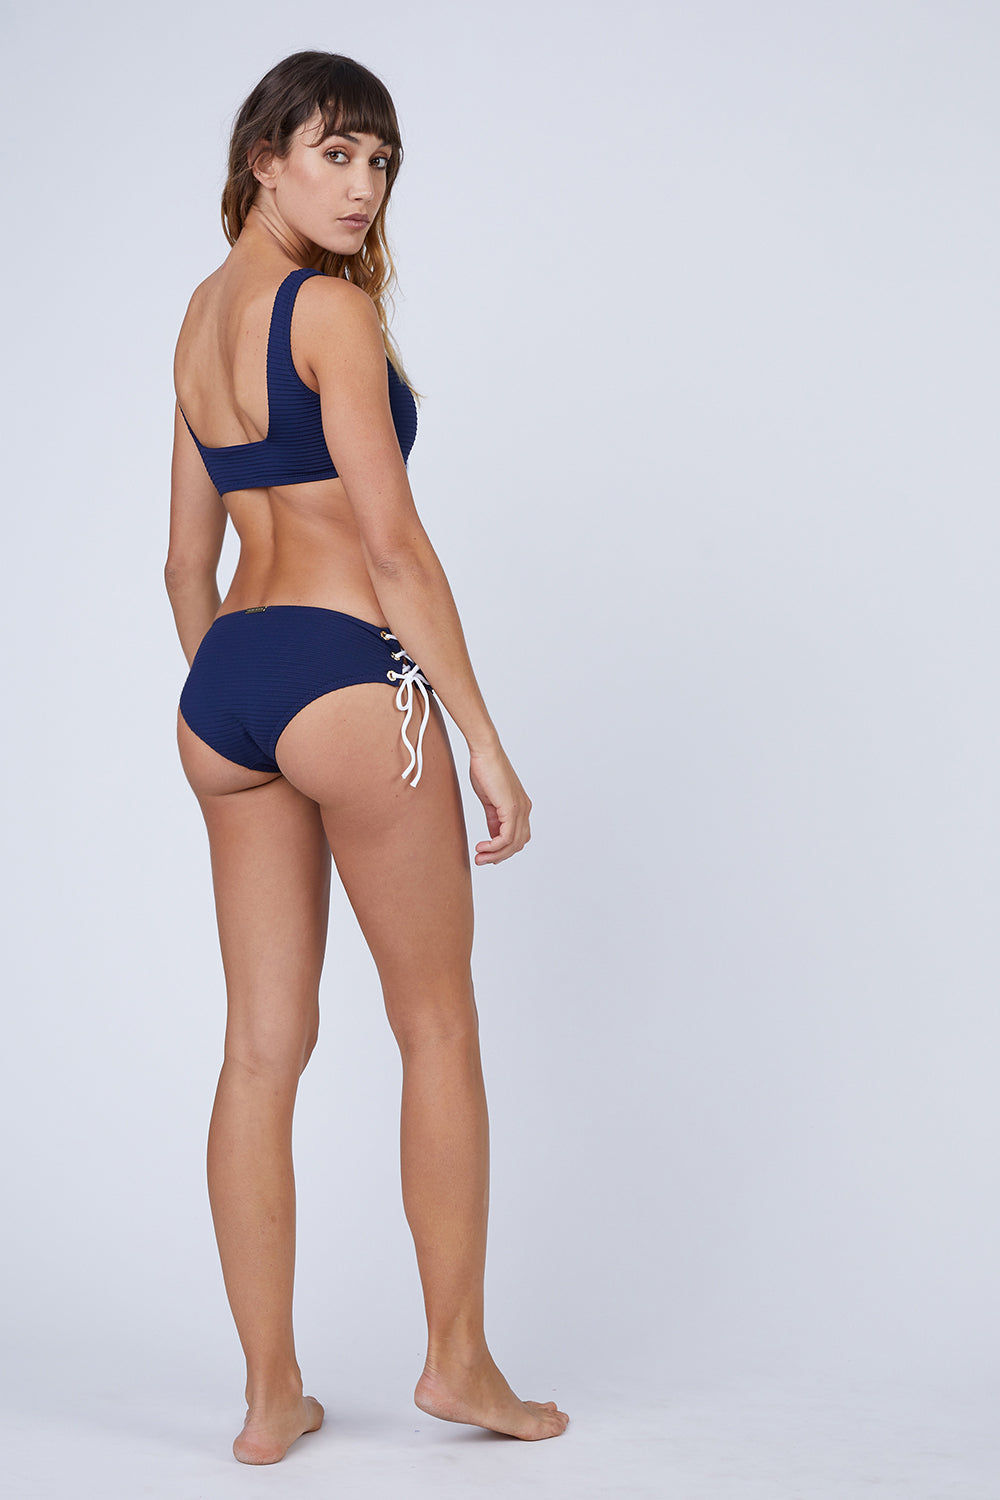 HEIDI KLEIN Ribbed Lace Up Mid Rise Bikini Bottom - Navy Blue Bikini Bottom | Navy Blue| Heidi Klein Ribbed Lace Up Mid Rise Bikini Bottom - Navy Blue. Features:  This style is cut to be High Rise and Mid Coverage. The waist and legs are elasticated for a secure, comfortable fit. Fully lined in soft lining for ultimate comfort. This high waisted style is cut with split side seams, fastened with decorative lacing. Back View